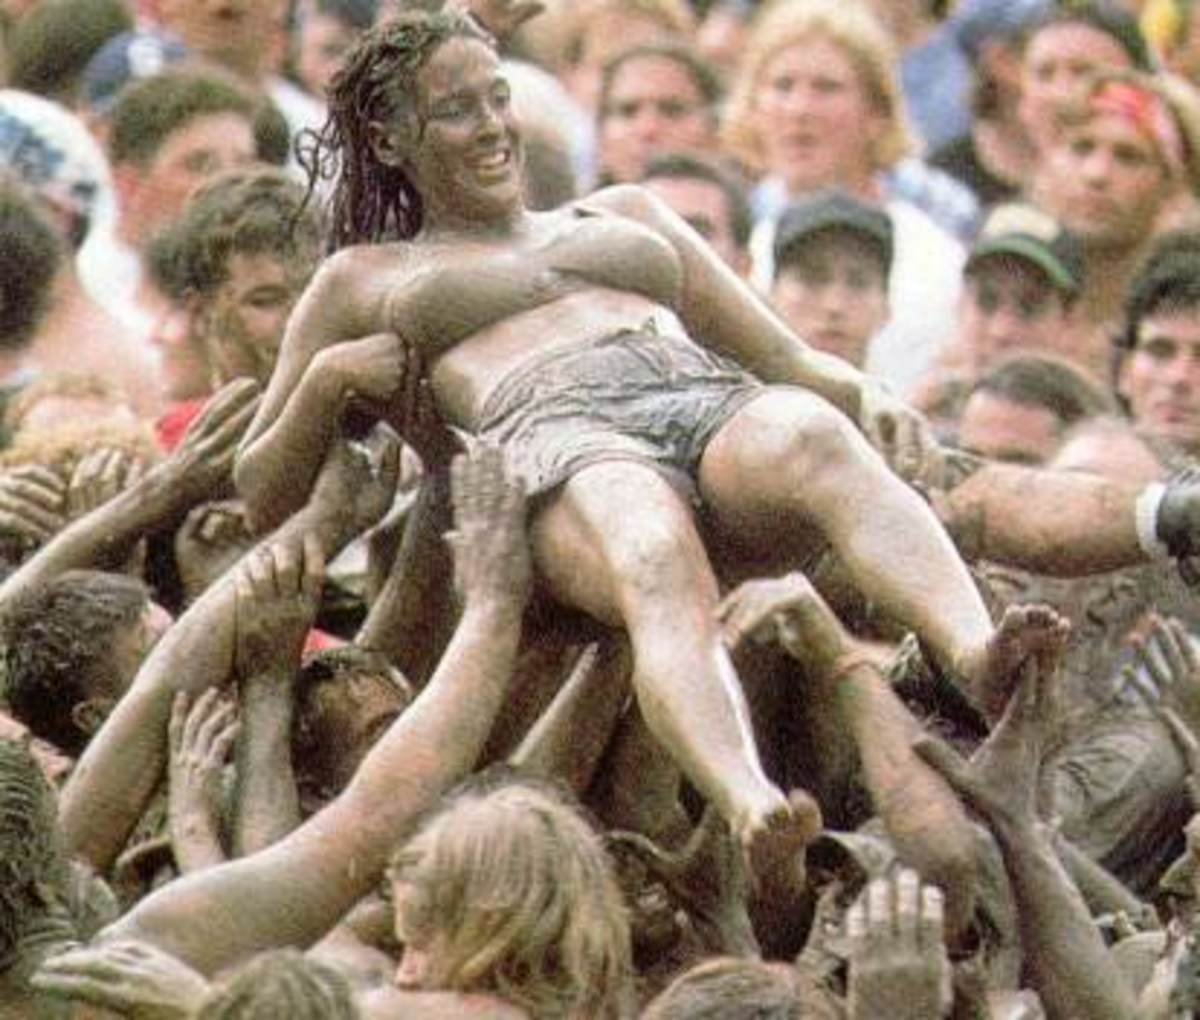 What Happened at Woodstock